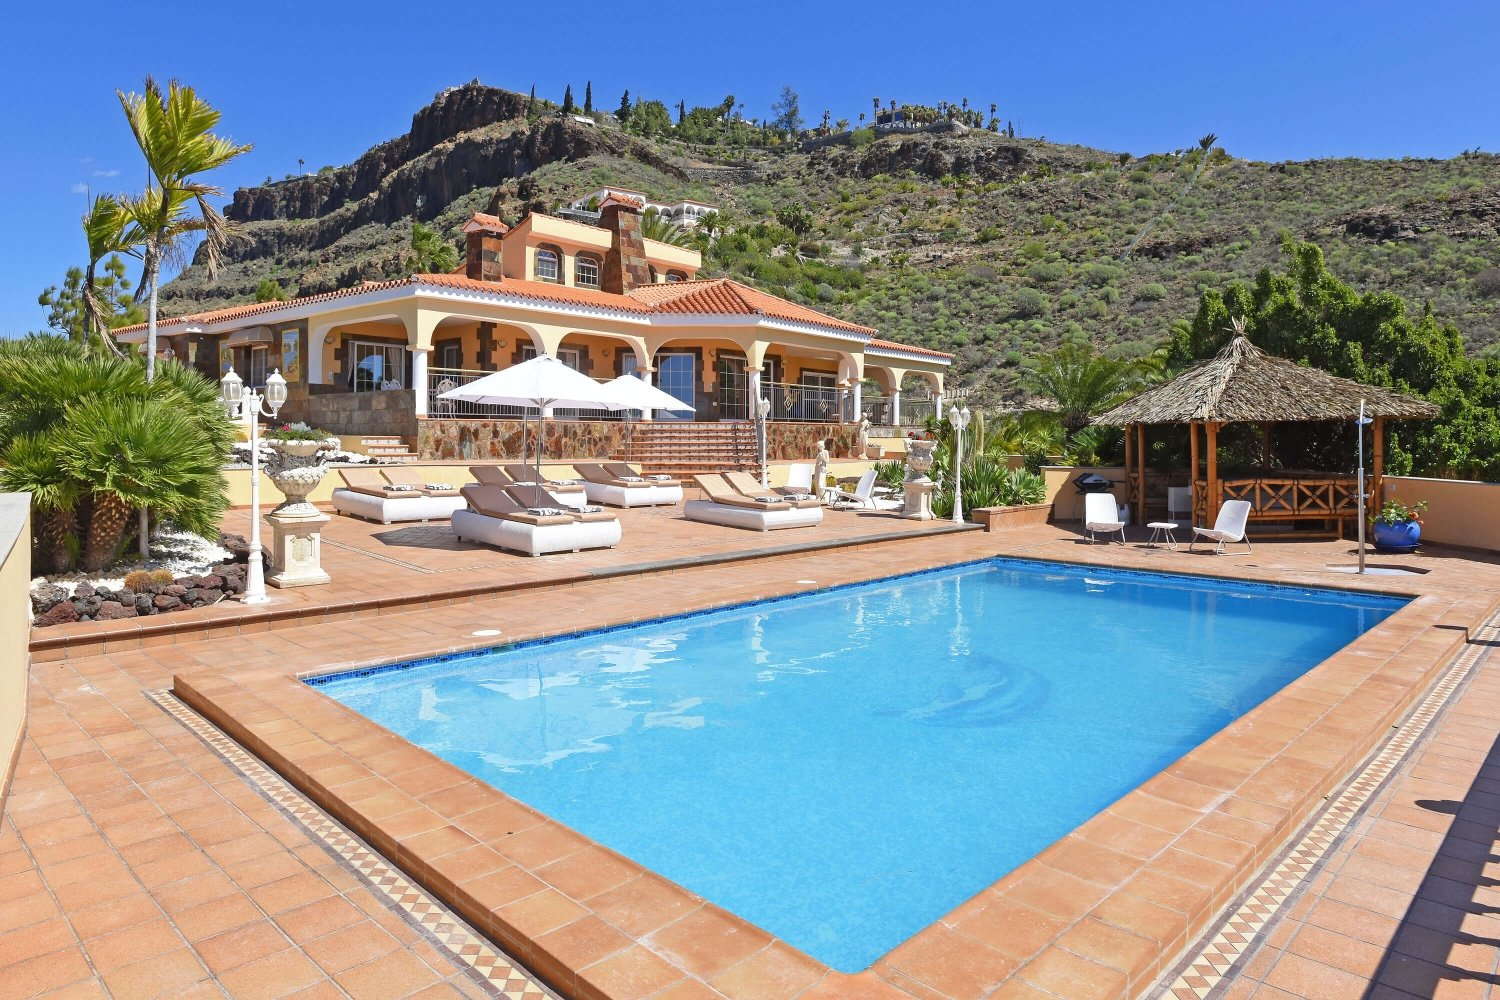 Fabulous holiday villa for 14 people with large terraces, fireplace, private pool, sauna and views of the sea and the mountains